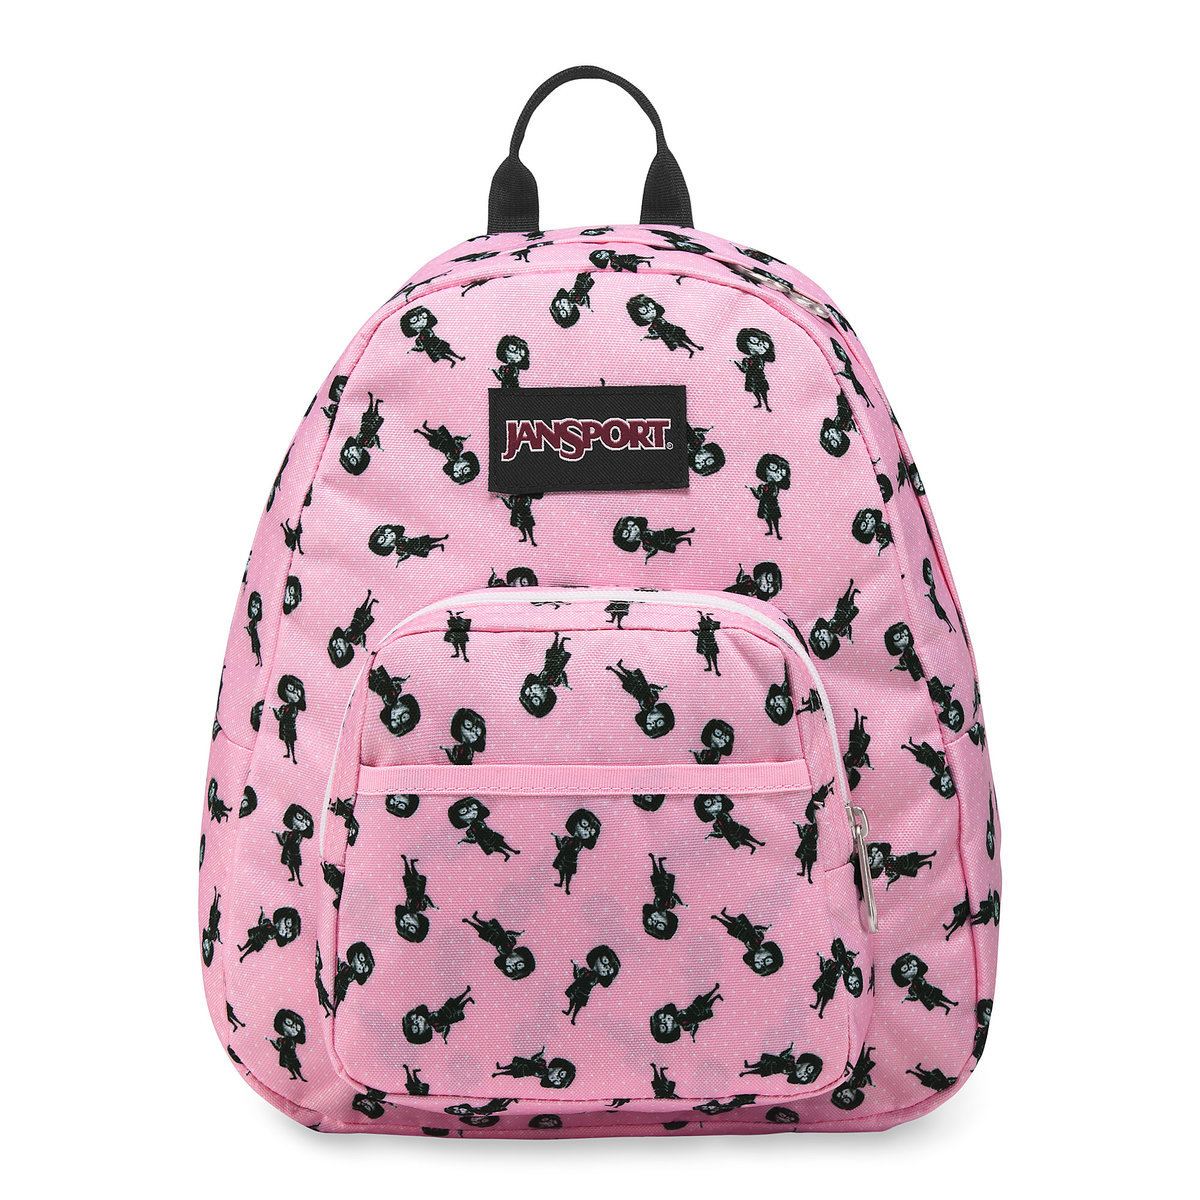 55da9f238be Product Image of Edna Mode Half Pint Mini Backpack by JanSport - Incredibles  2   1